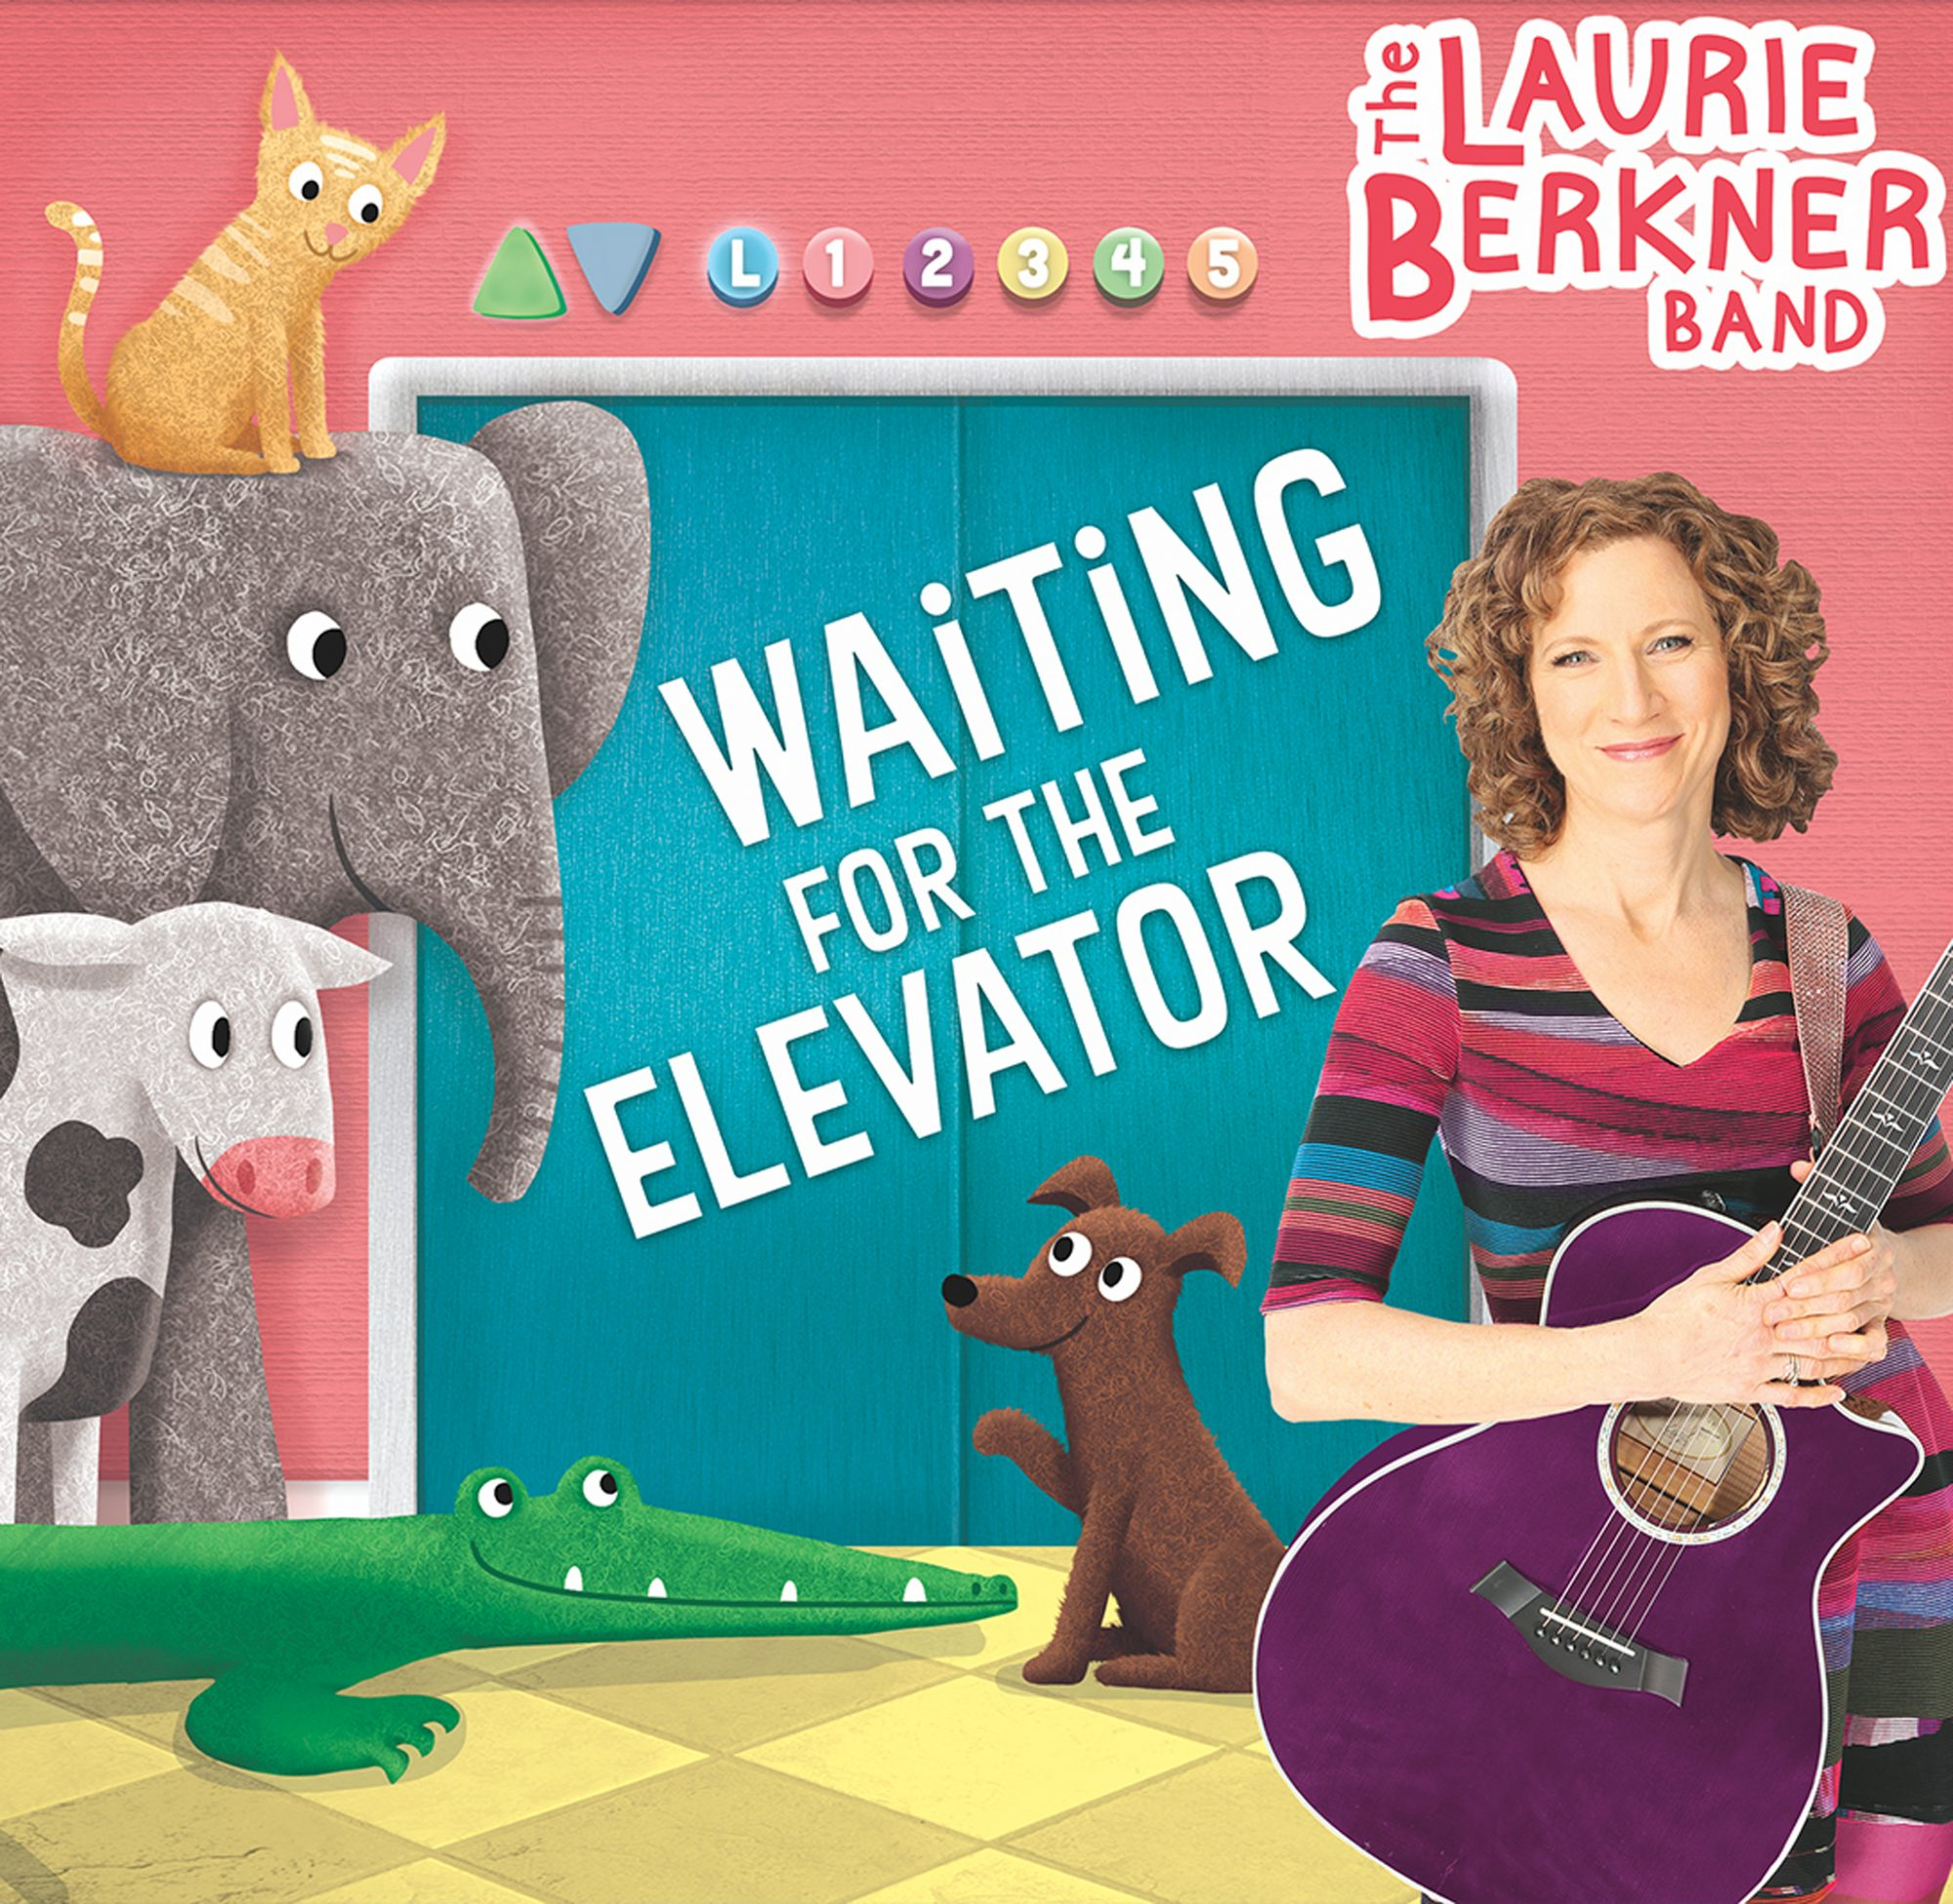 The Laurie Berkner Band 'Waiting for the Elevator'